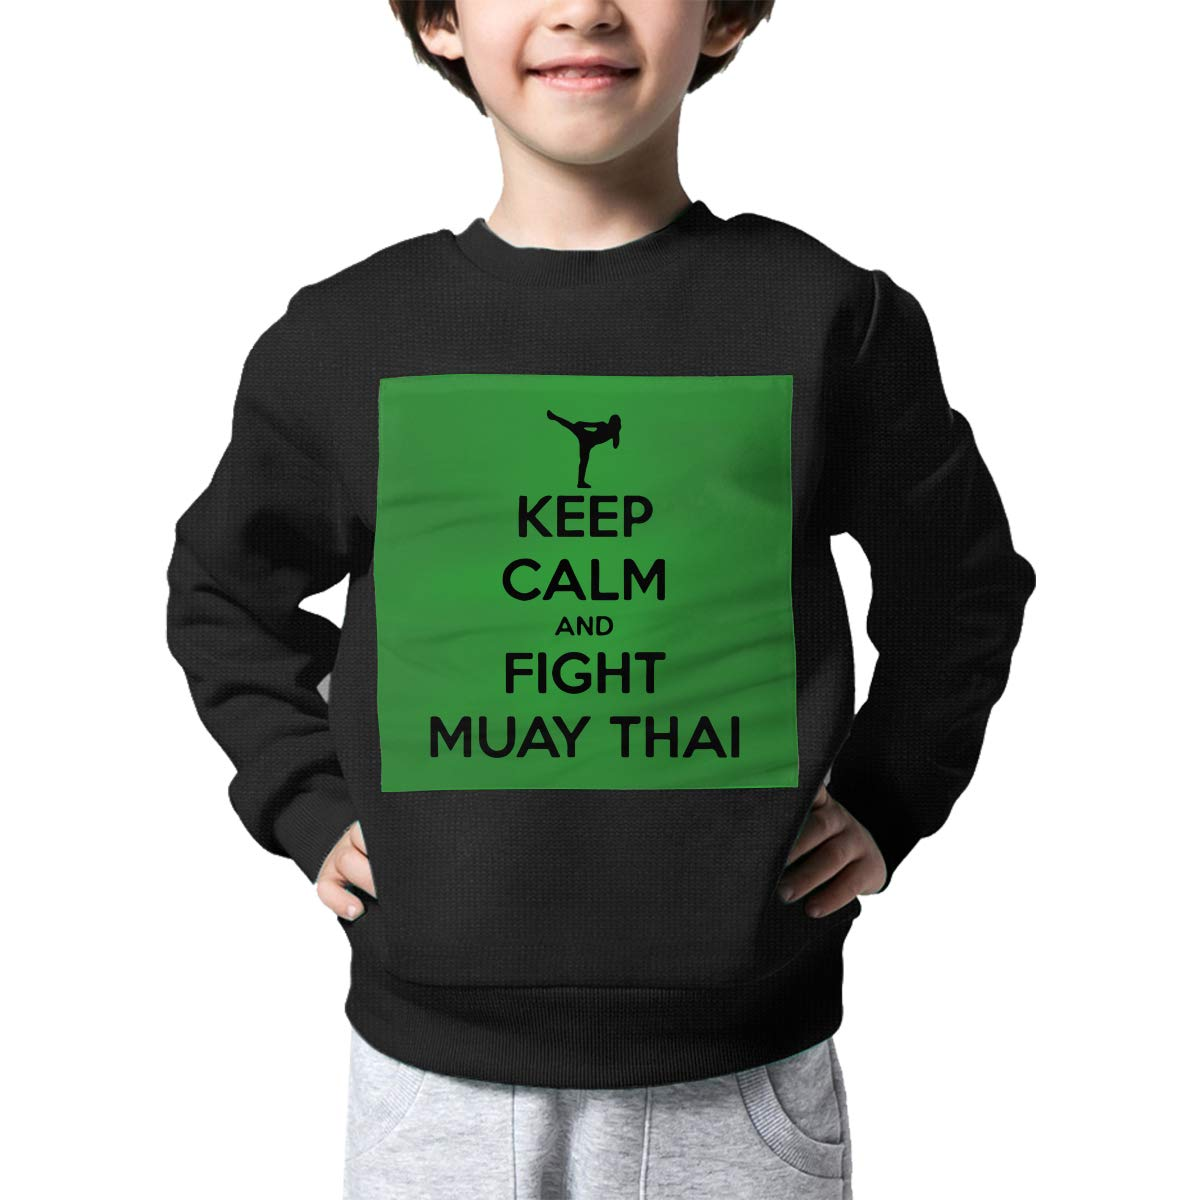 AW-KOCP Childrens Keep Calm and Fight Muay Thai Sweater Kids Outerwear